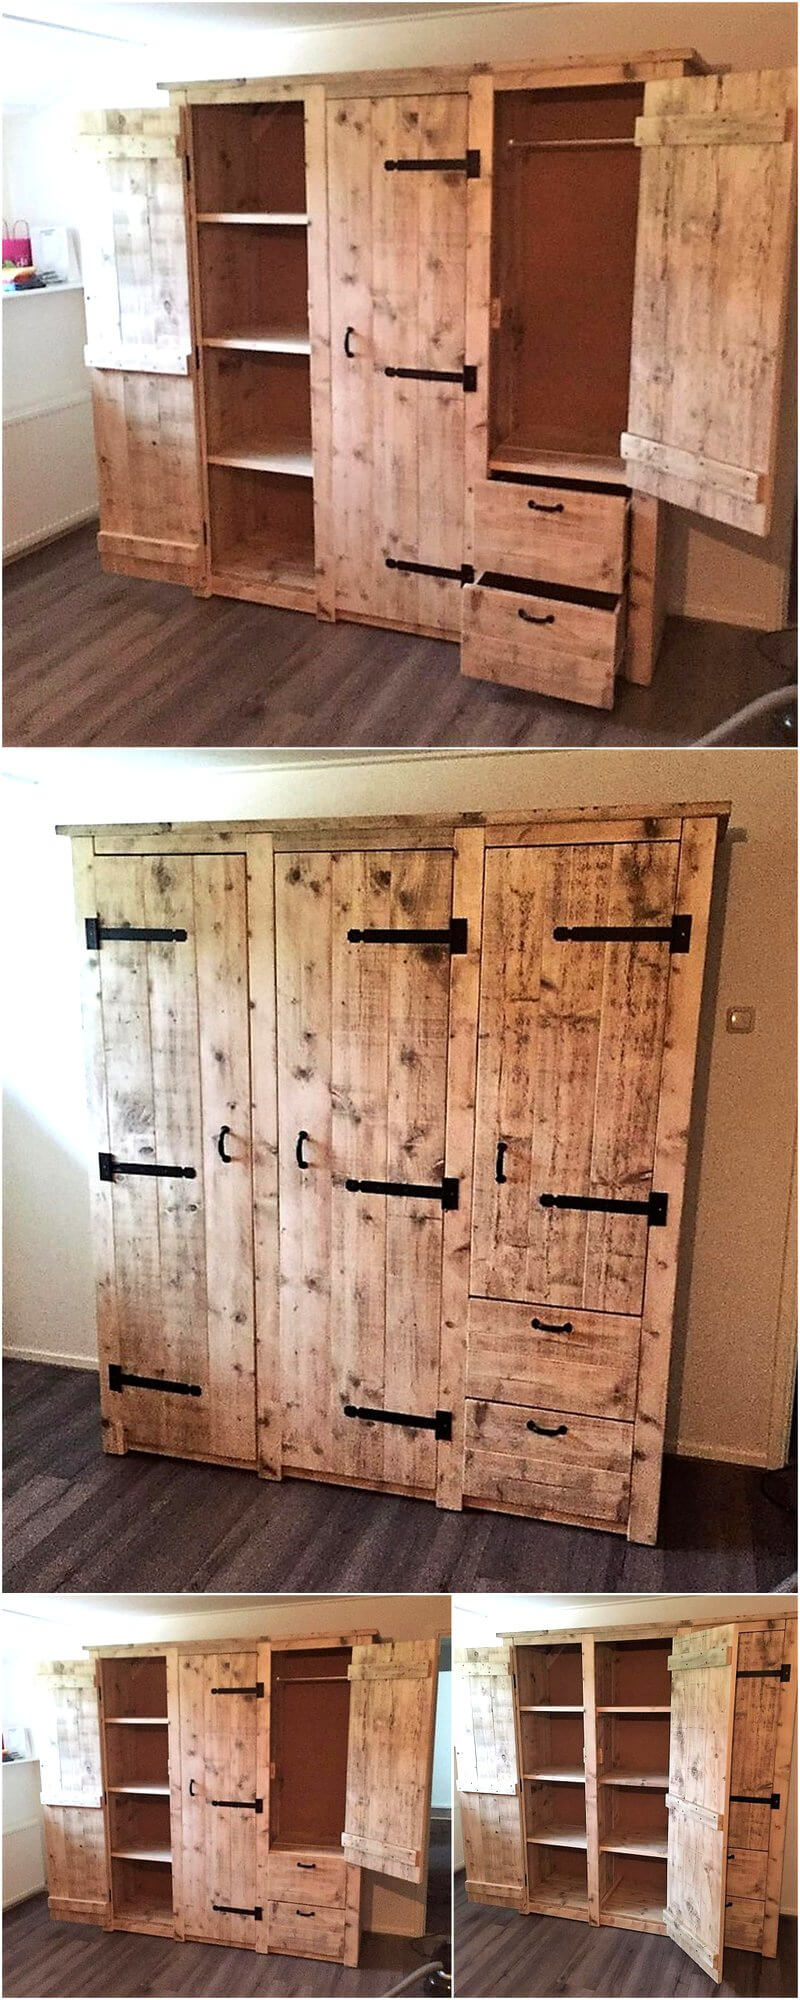 Creative Creations with Reclaimed Wooden Pallets | Page 2 ...